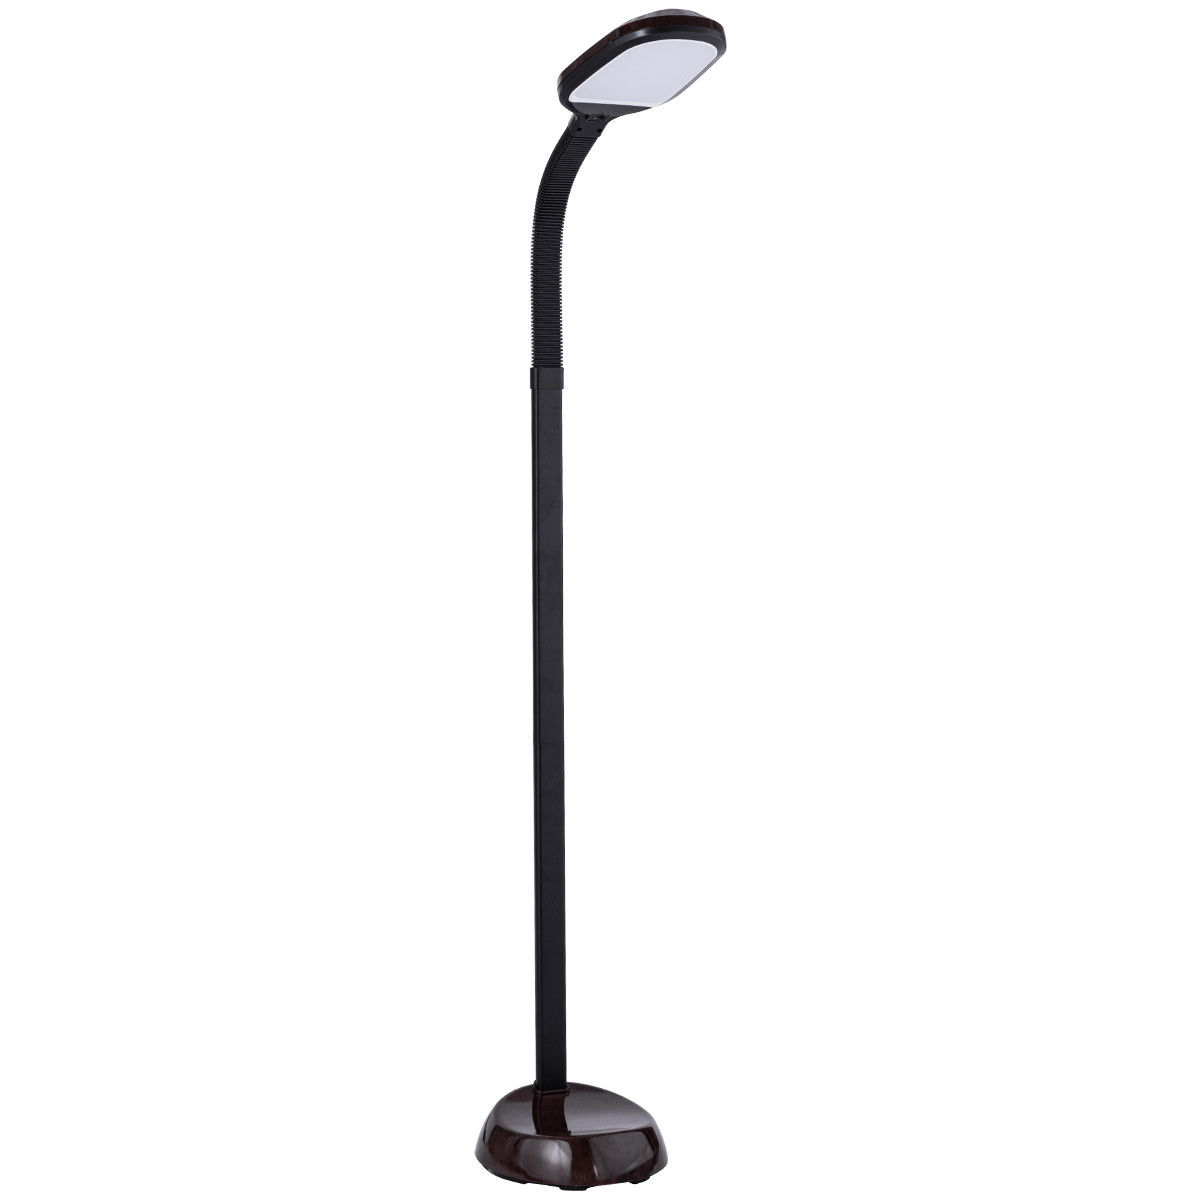 Costway LED Reading Light Standing Floor Lamp Adjustable Gooseneck Energy Saving Walnut by Costway